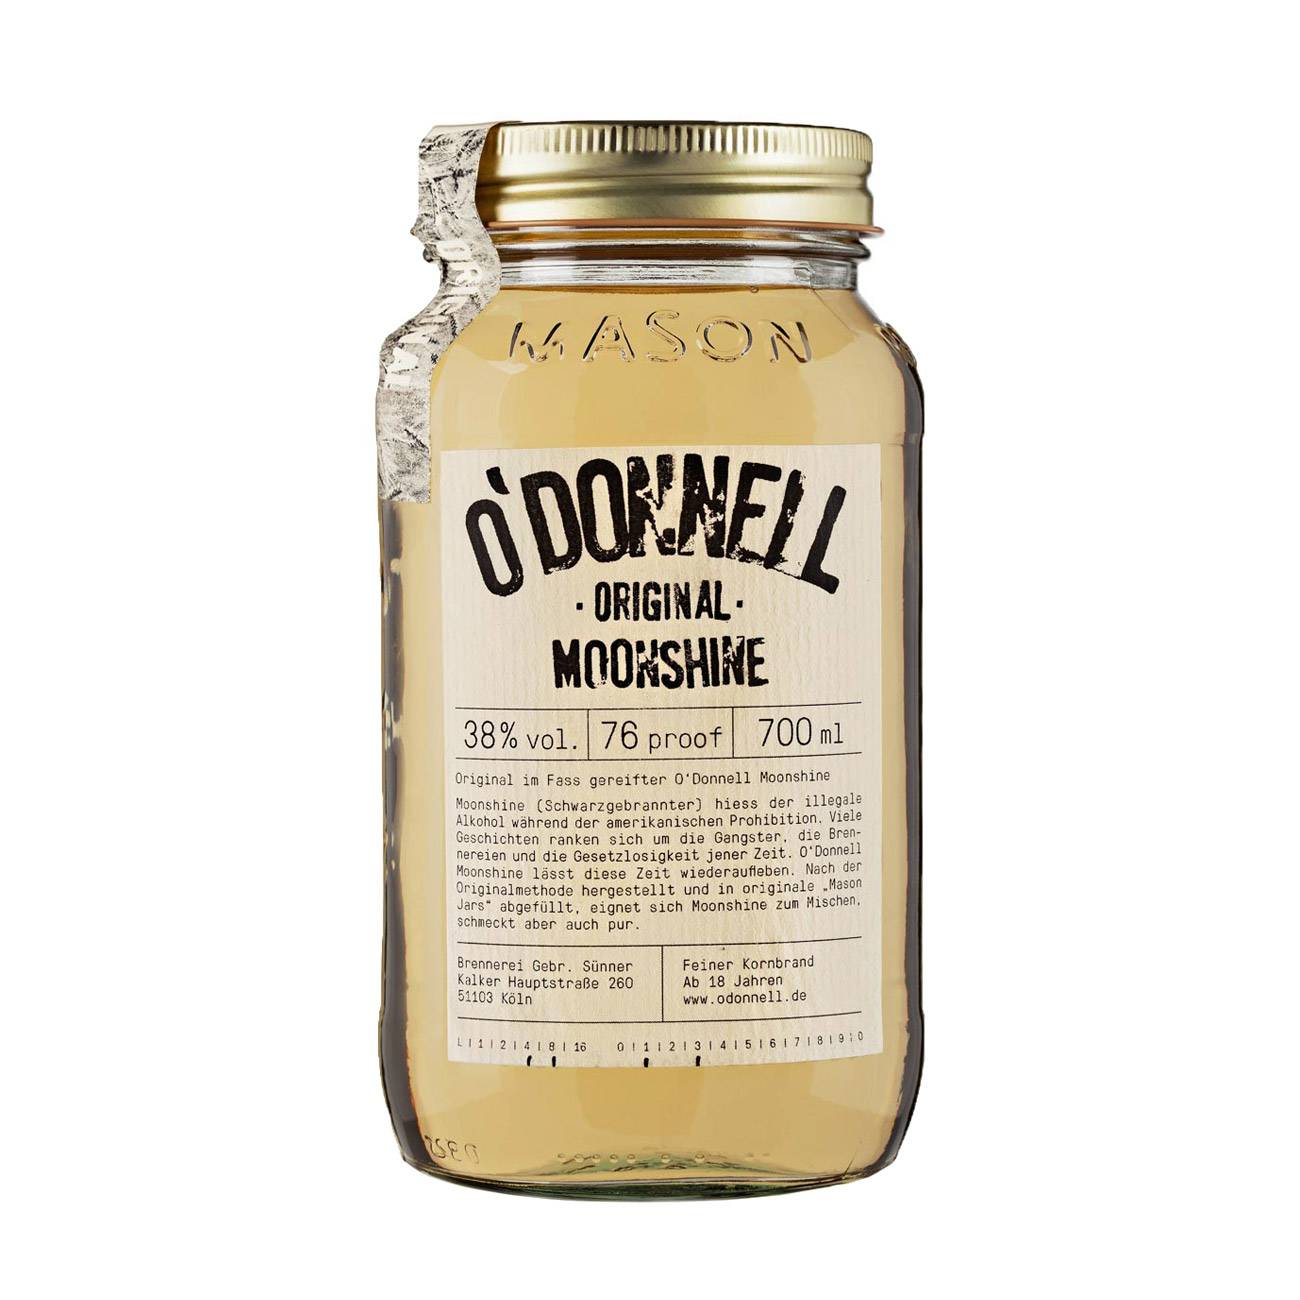 Whiskey american, ORIGINAL 700ml, Moonshine